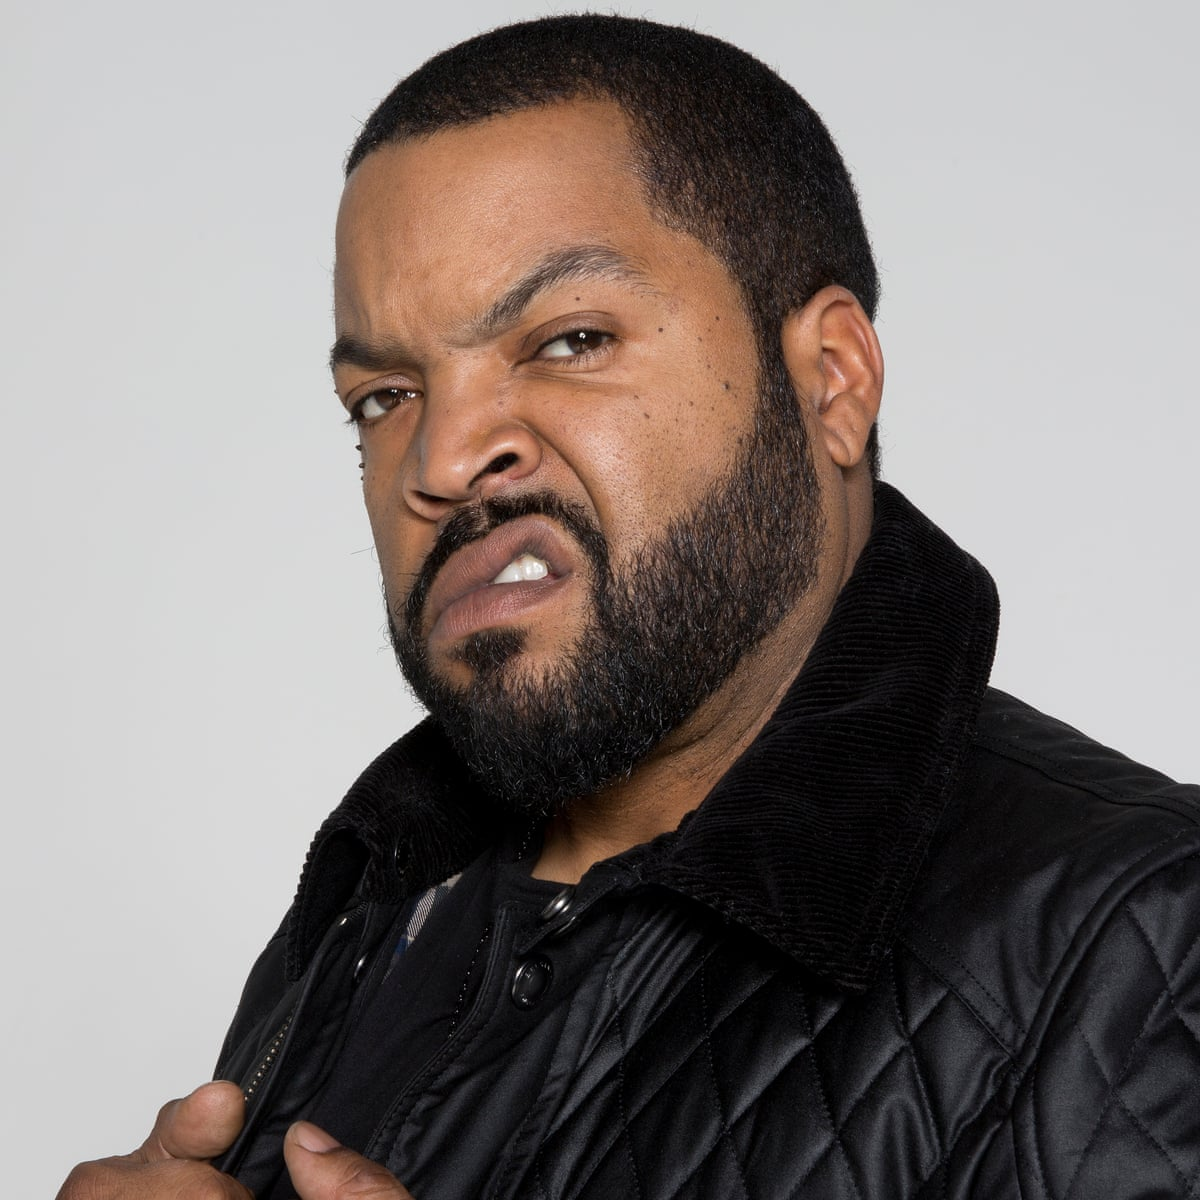 Frozen in time: why does nobody want to hear Ice Cube rap any more? | Ice  Cube | The Guardian